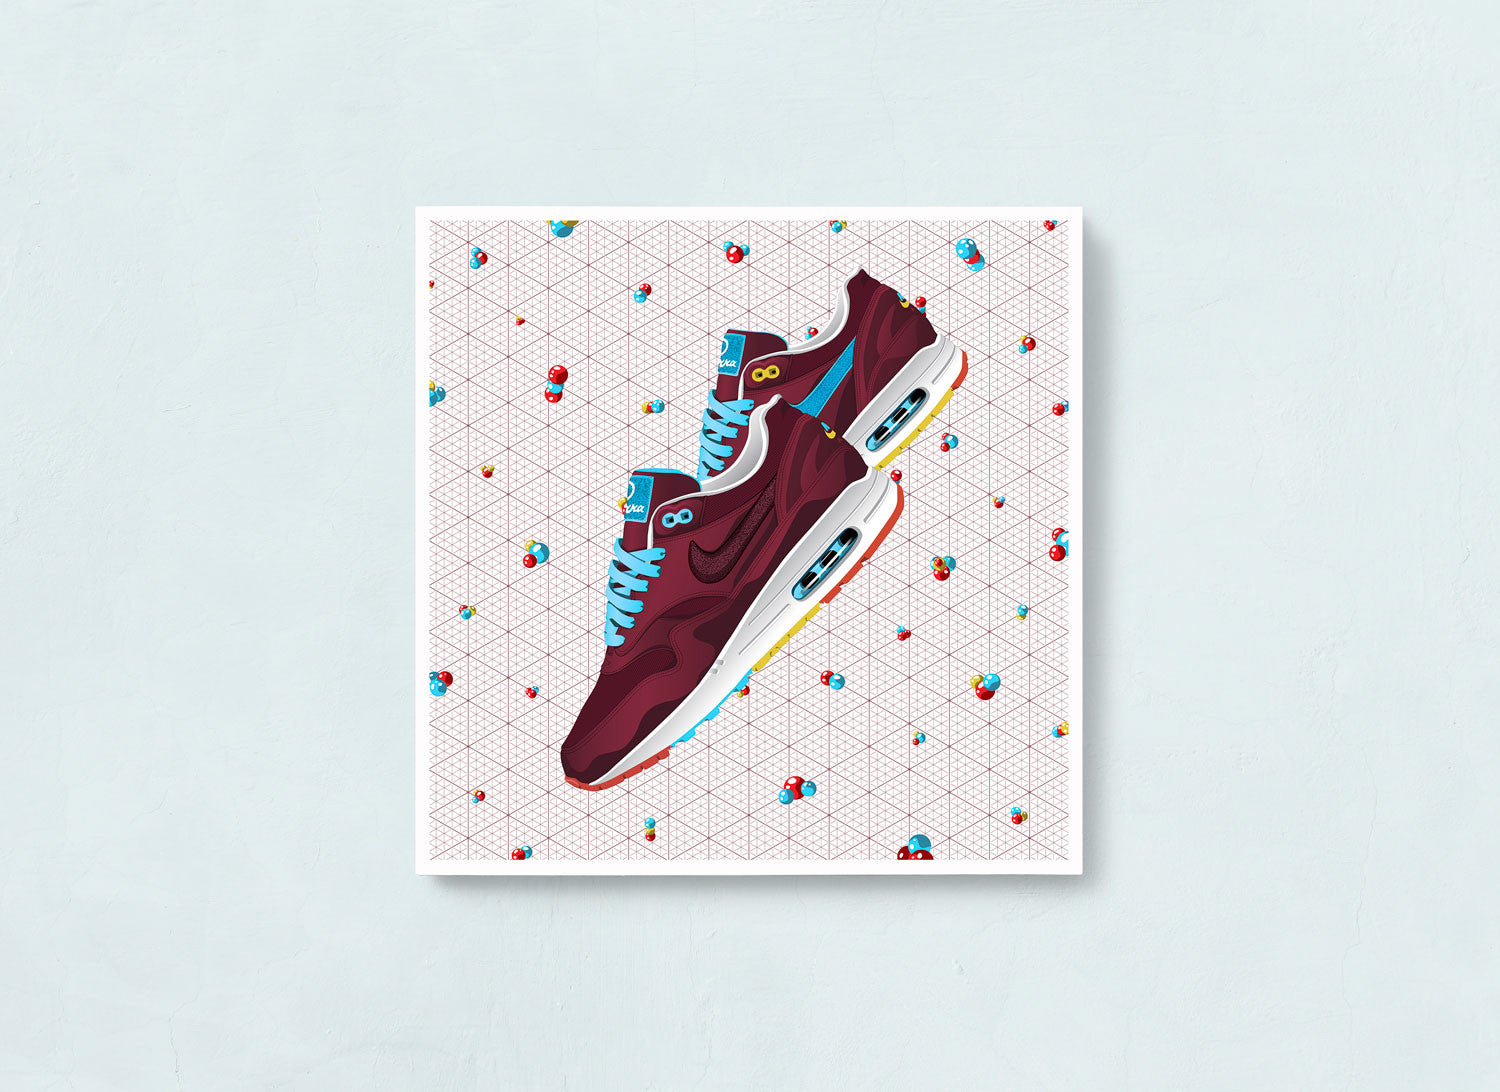 Contemporary Sneaker Art Print of the Nike Air Max 1 Patta x Parra